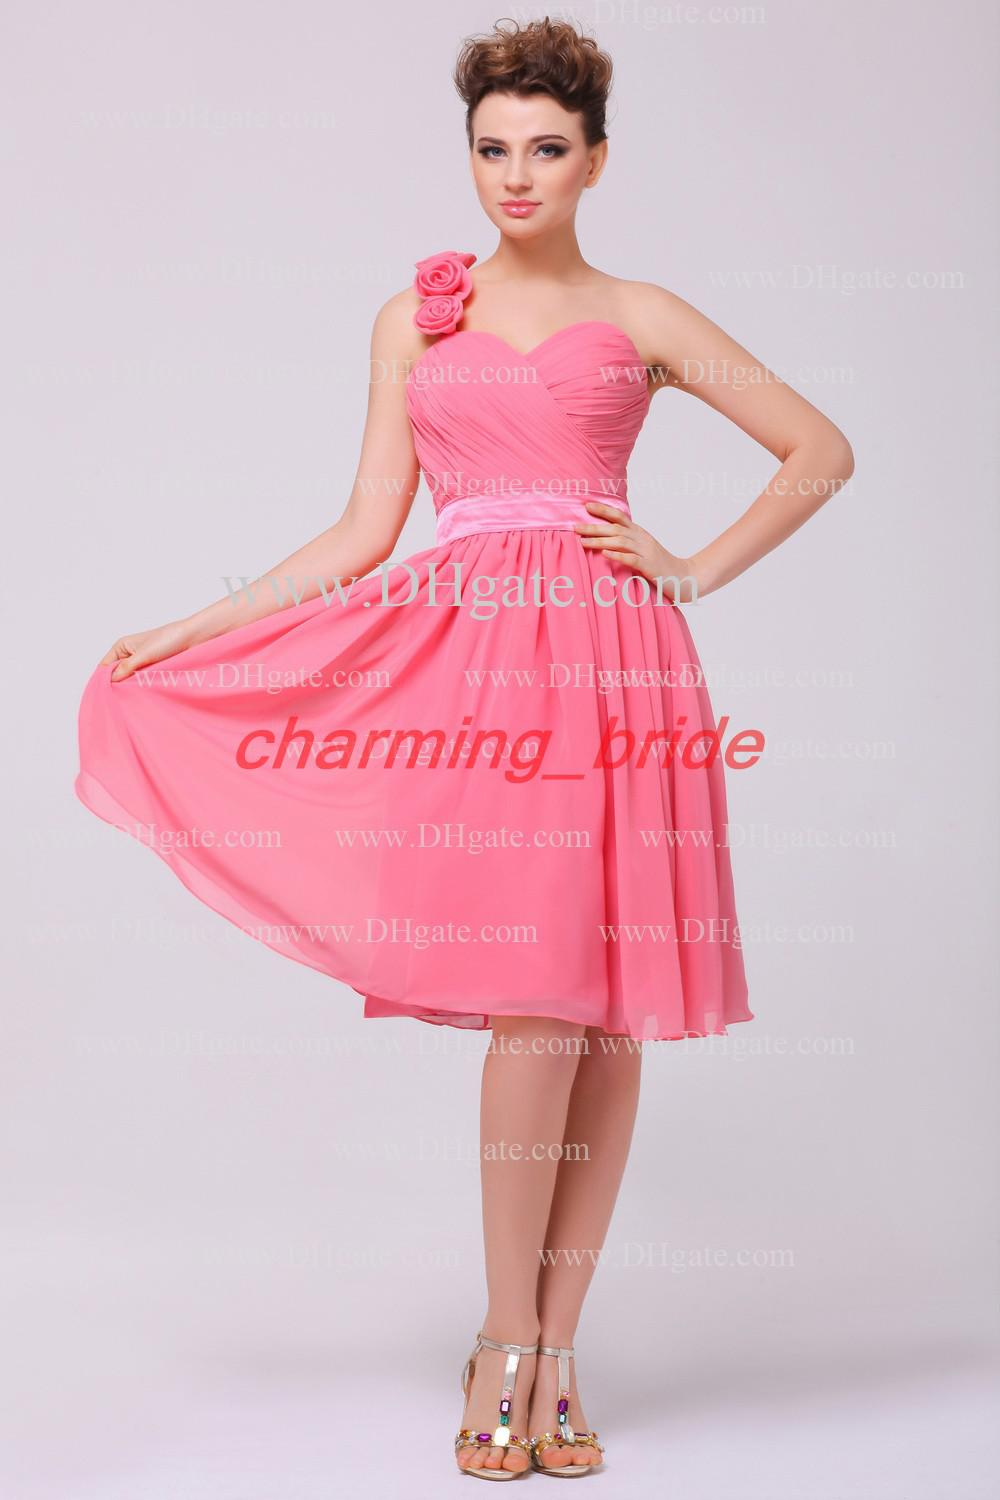 2013 hot pink bridesmaid dresses a line knee length flower one 2013 hot pink bridesmaid dresses a line knee length flower one shoulder sweetheart homecoming dress polka dot bridesmaid dresses popular bridesmaid dresses ombrellifo Image collections